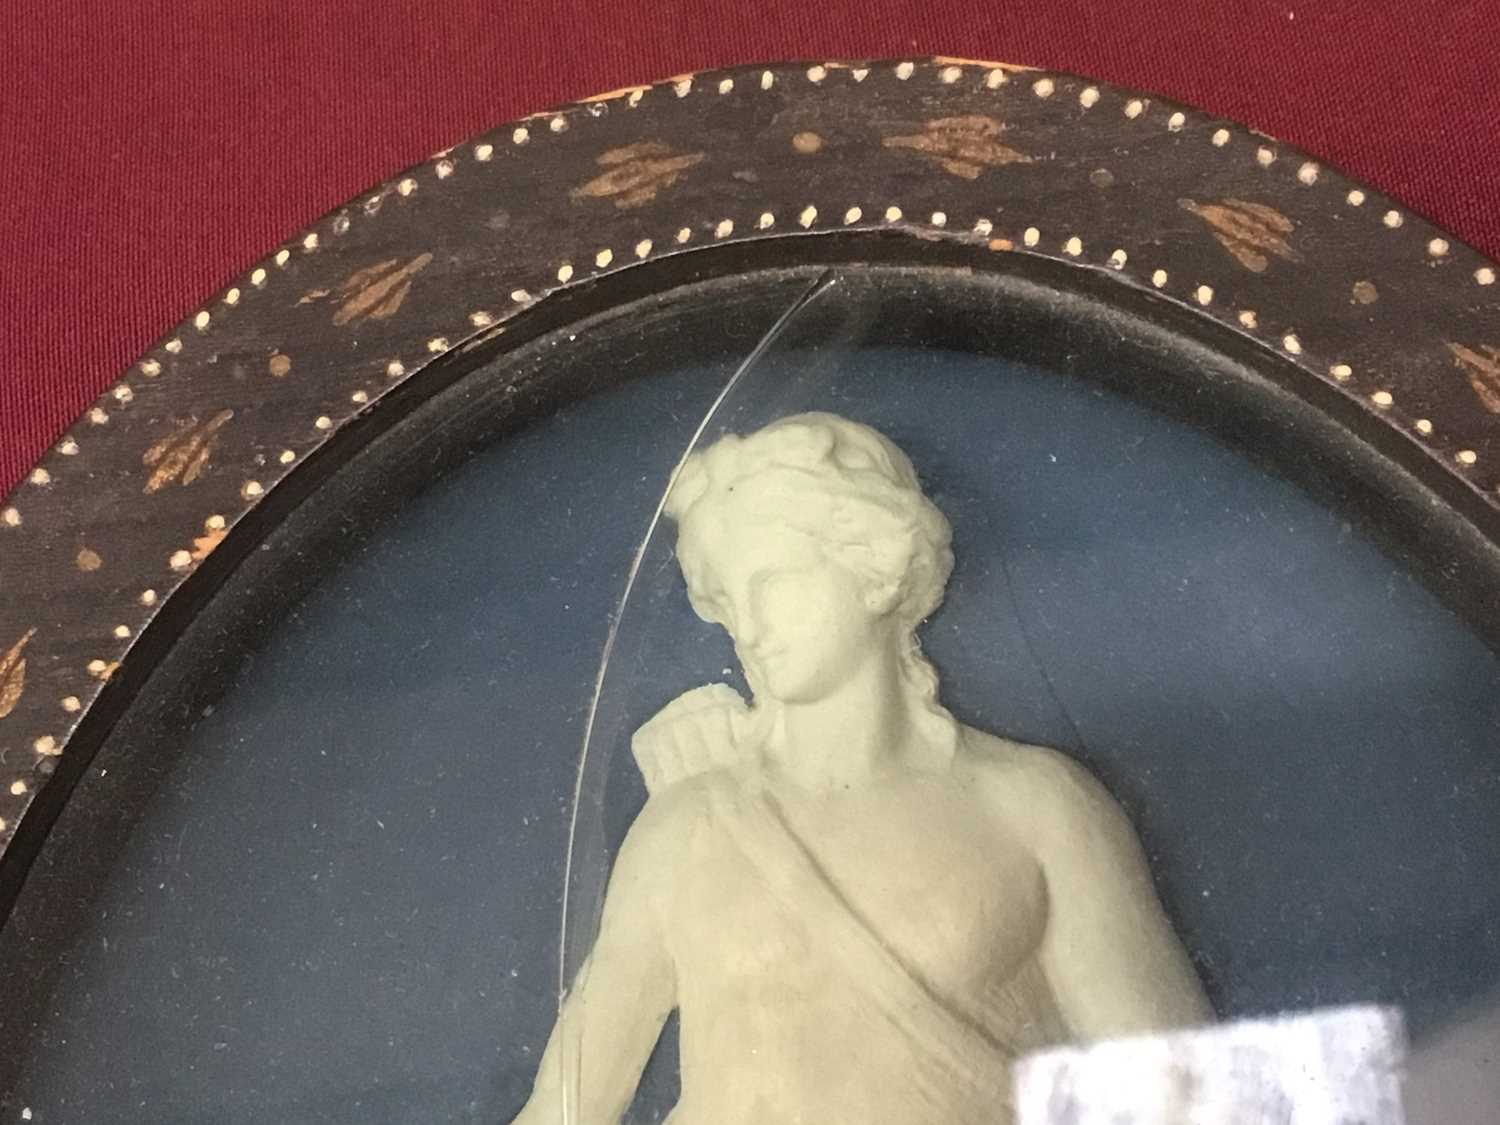 Pair of late 18th/early 19th century composition oval relief plaques depicting classical figures, in - Image 3 of 11